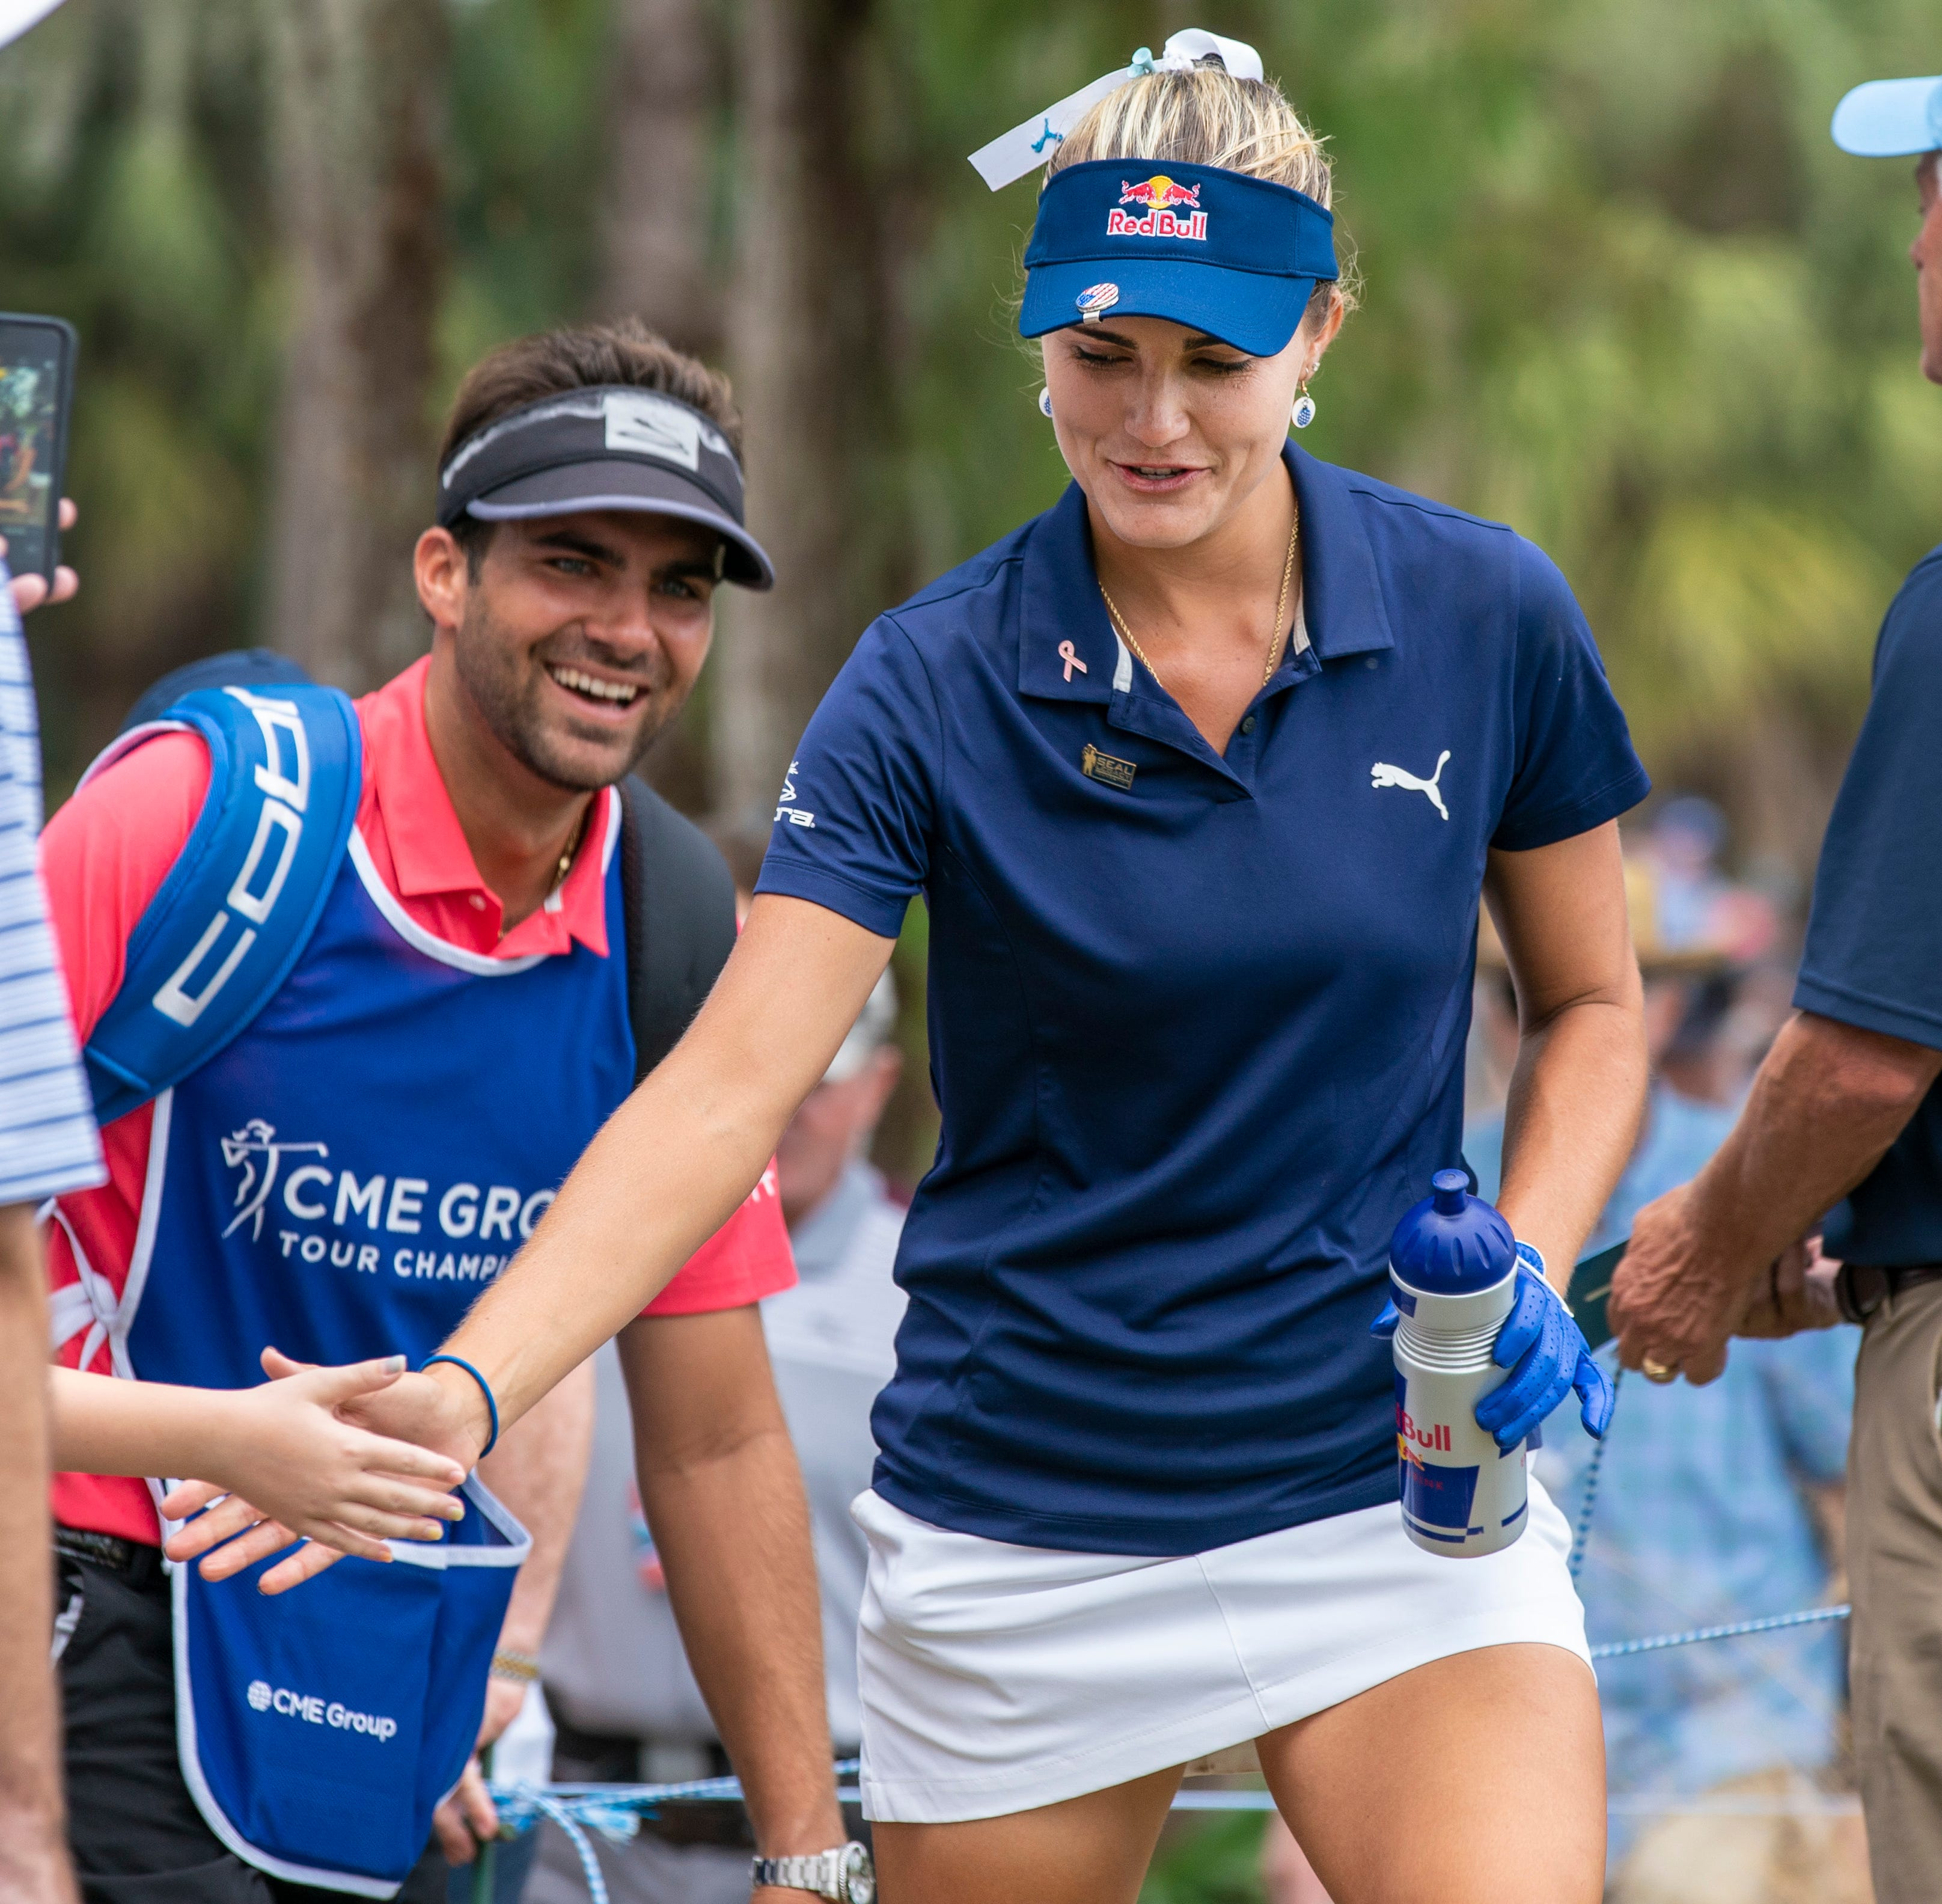 CME Group Tour Championship: Lexi Thompson, Ariya Jutanugarn big winners again in Naples